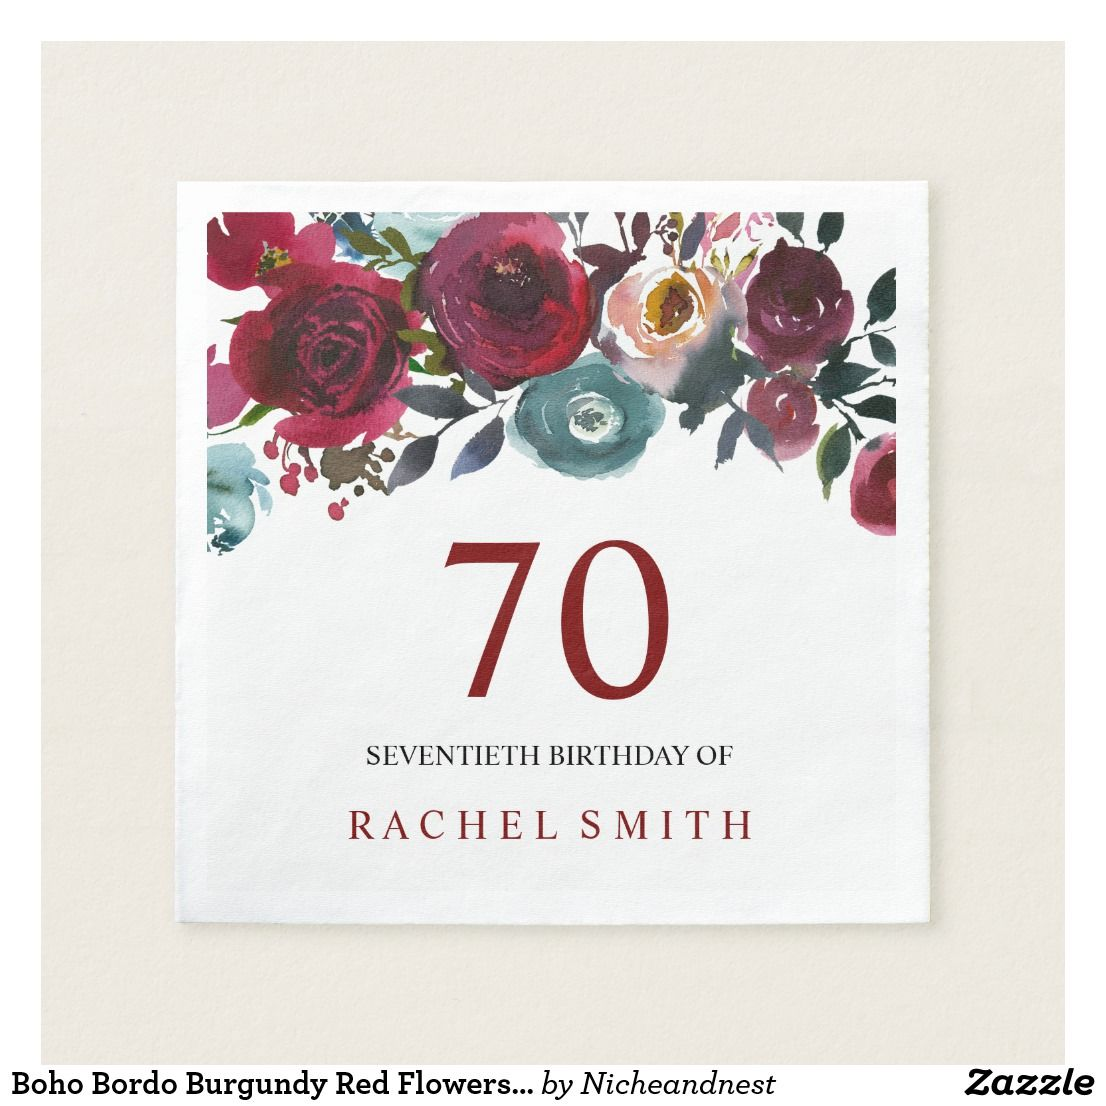 Boho bordo burgundy red flowers 70th birthday paper napkin happy boho bordo burgundy red flowers 70th birthday paper napkin boho bordo burgundy red flowers 70th birthday izmirmasajfo